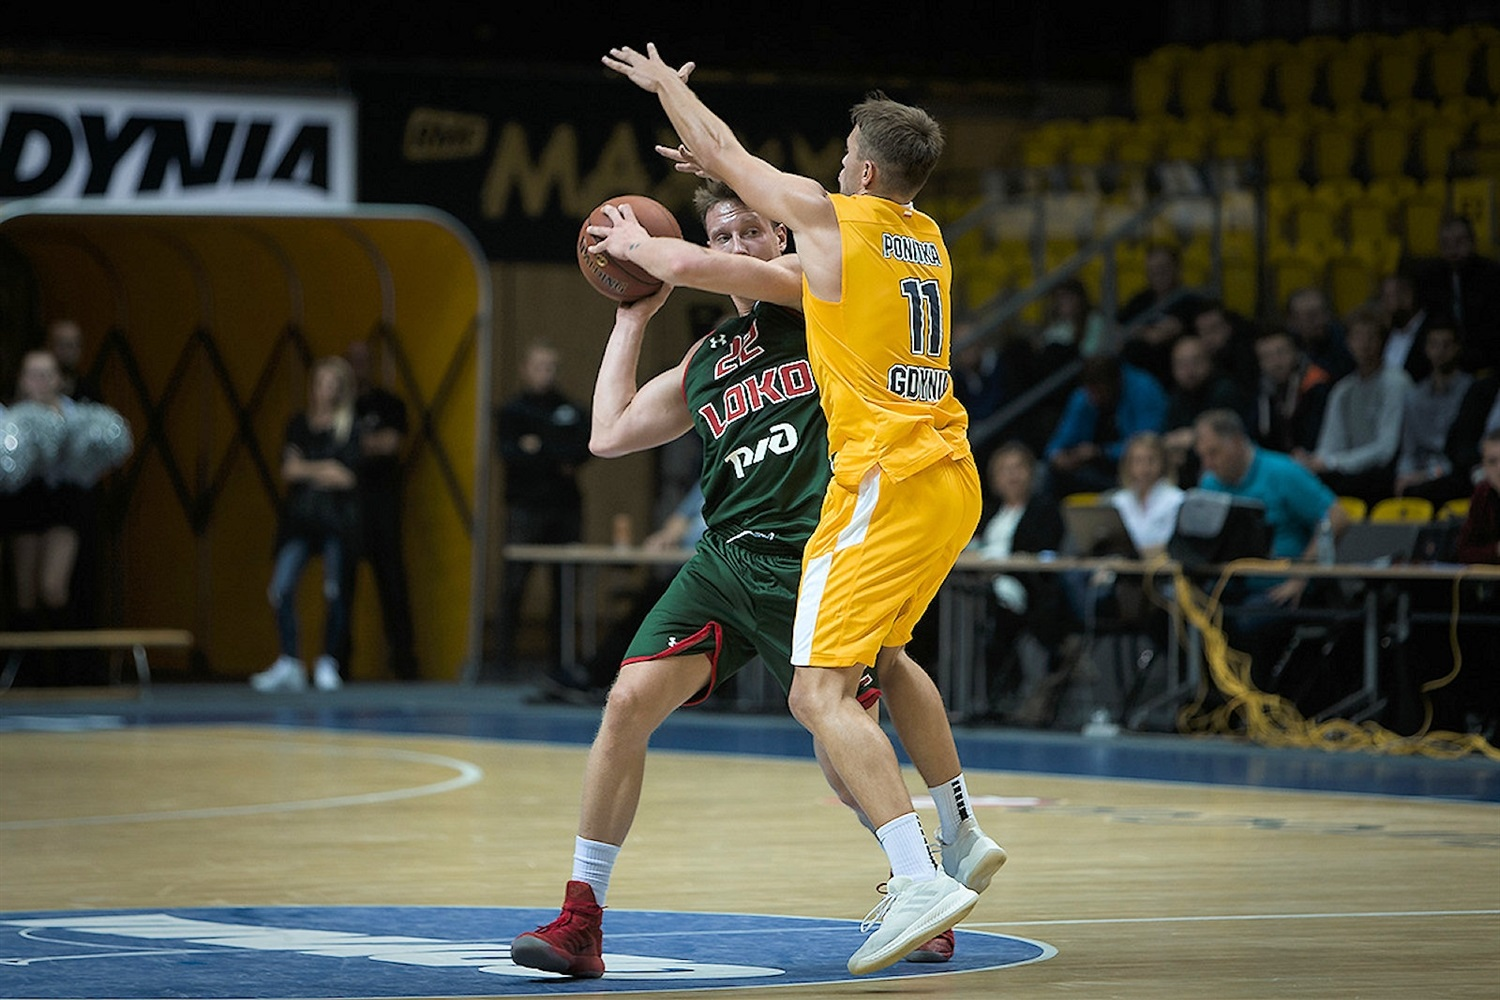 Dmitry Kulagin - Lokomotiv Kuban Krasnodar (photo Arka Gdynia) - EC18